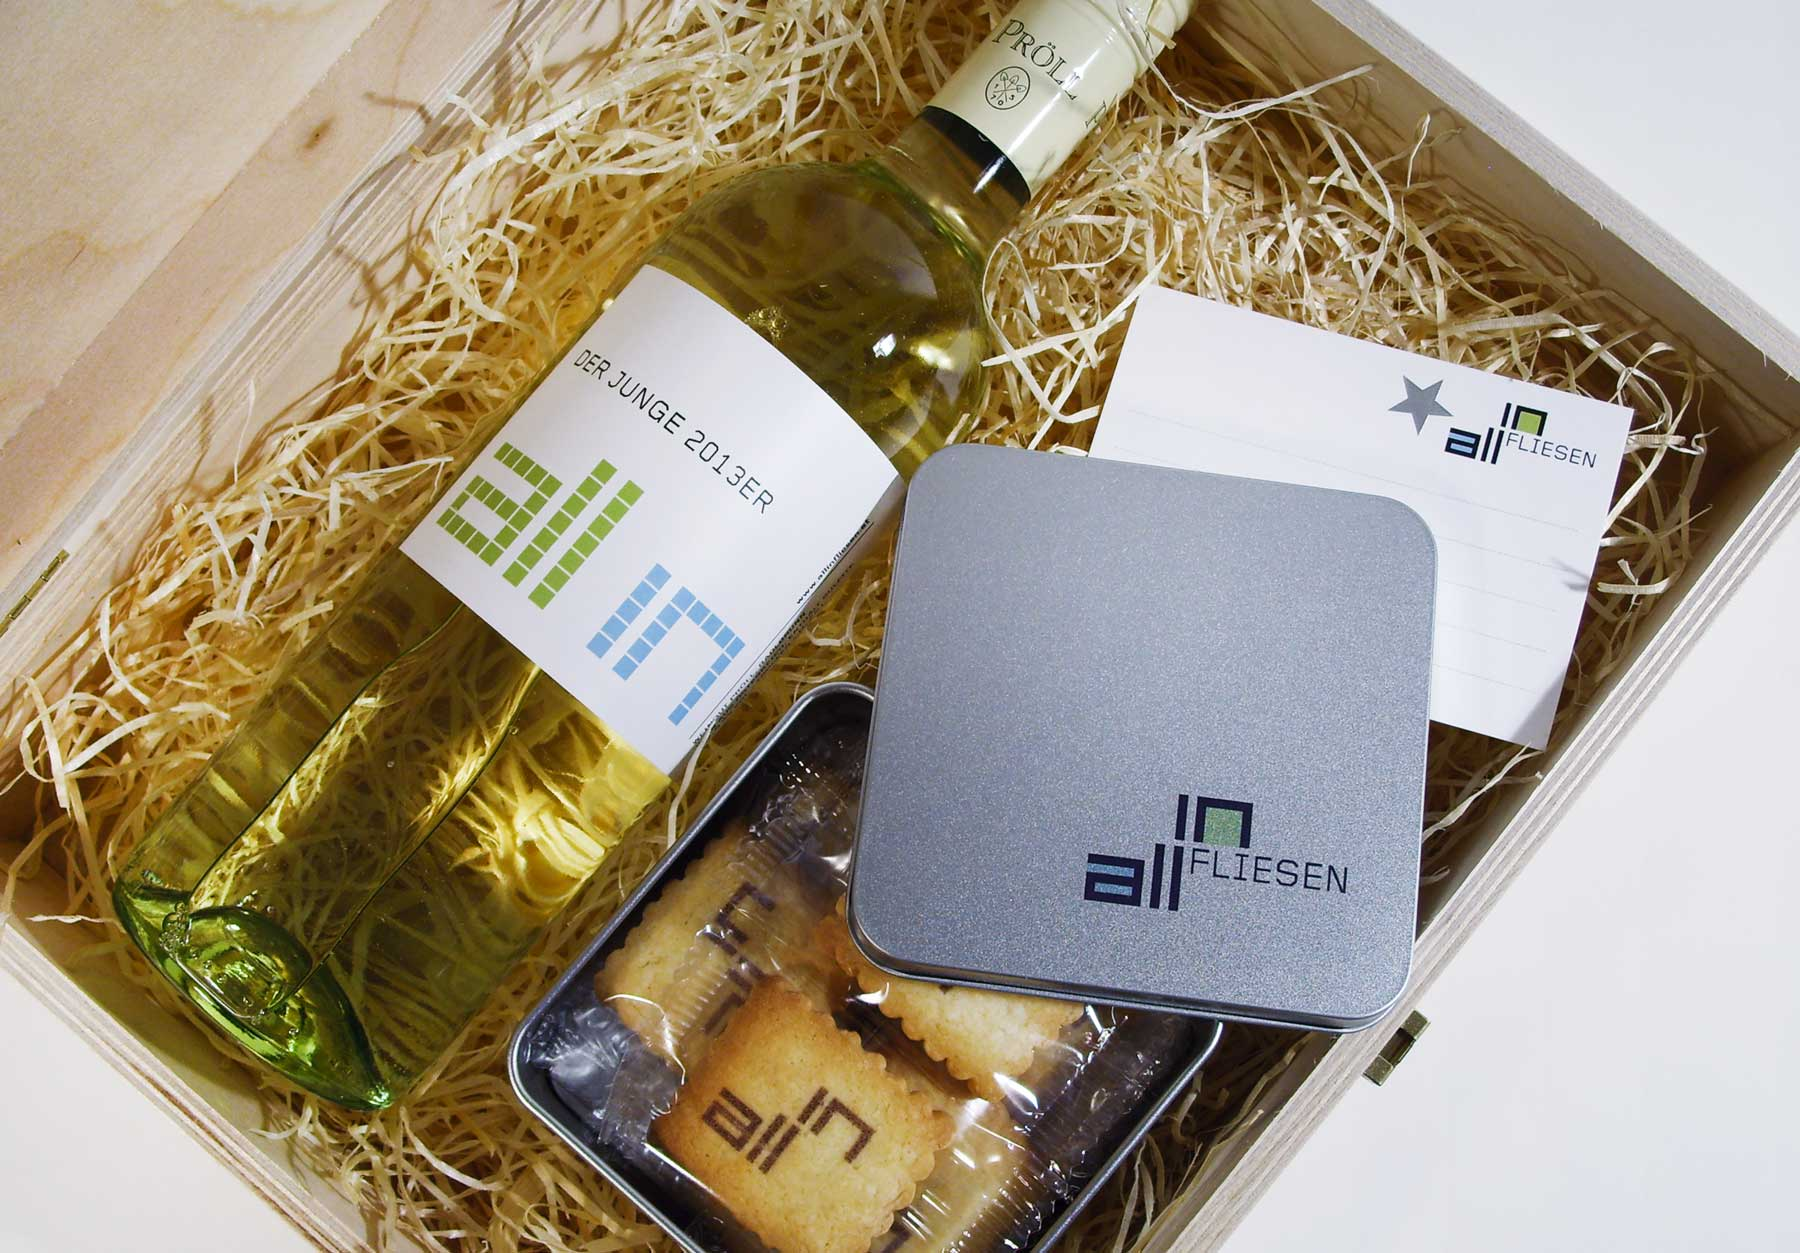 all in fliesen Geschenkbox